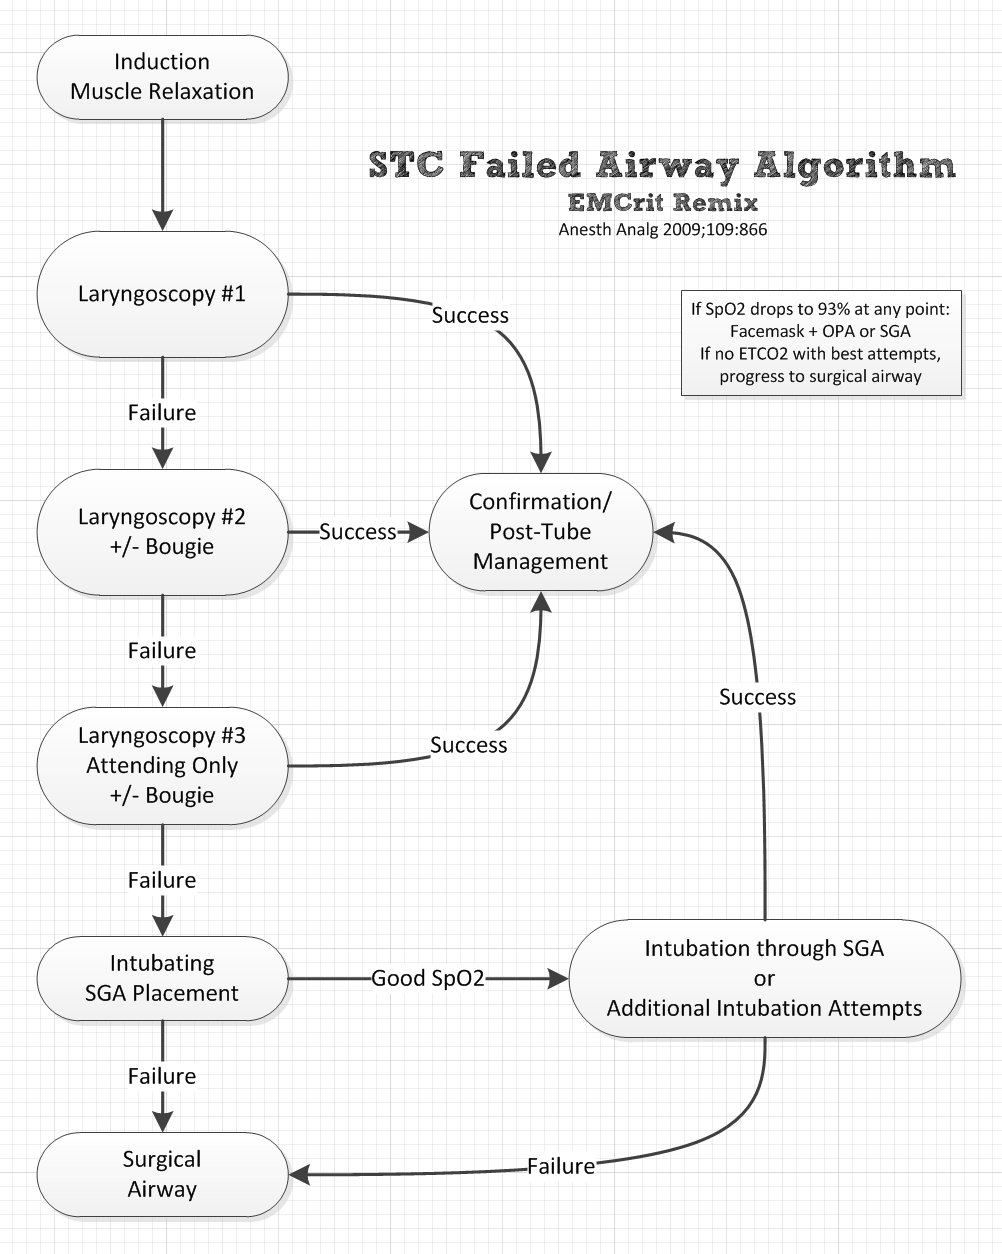 Shock Trauma Failed Airway Algorithm by EMCrit